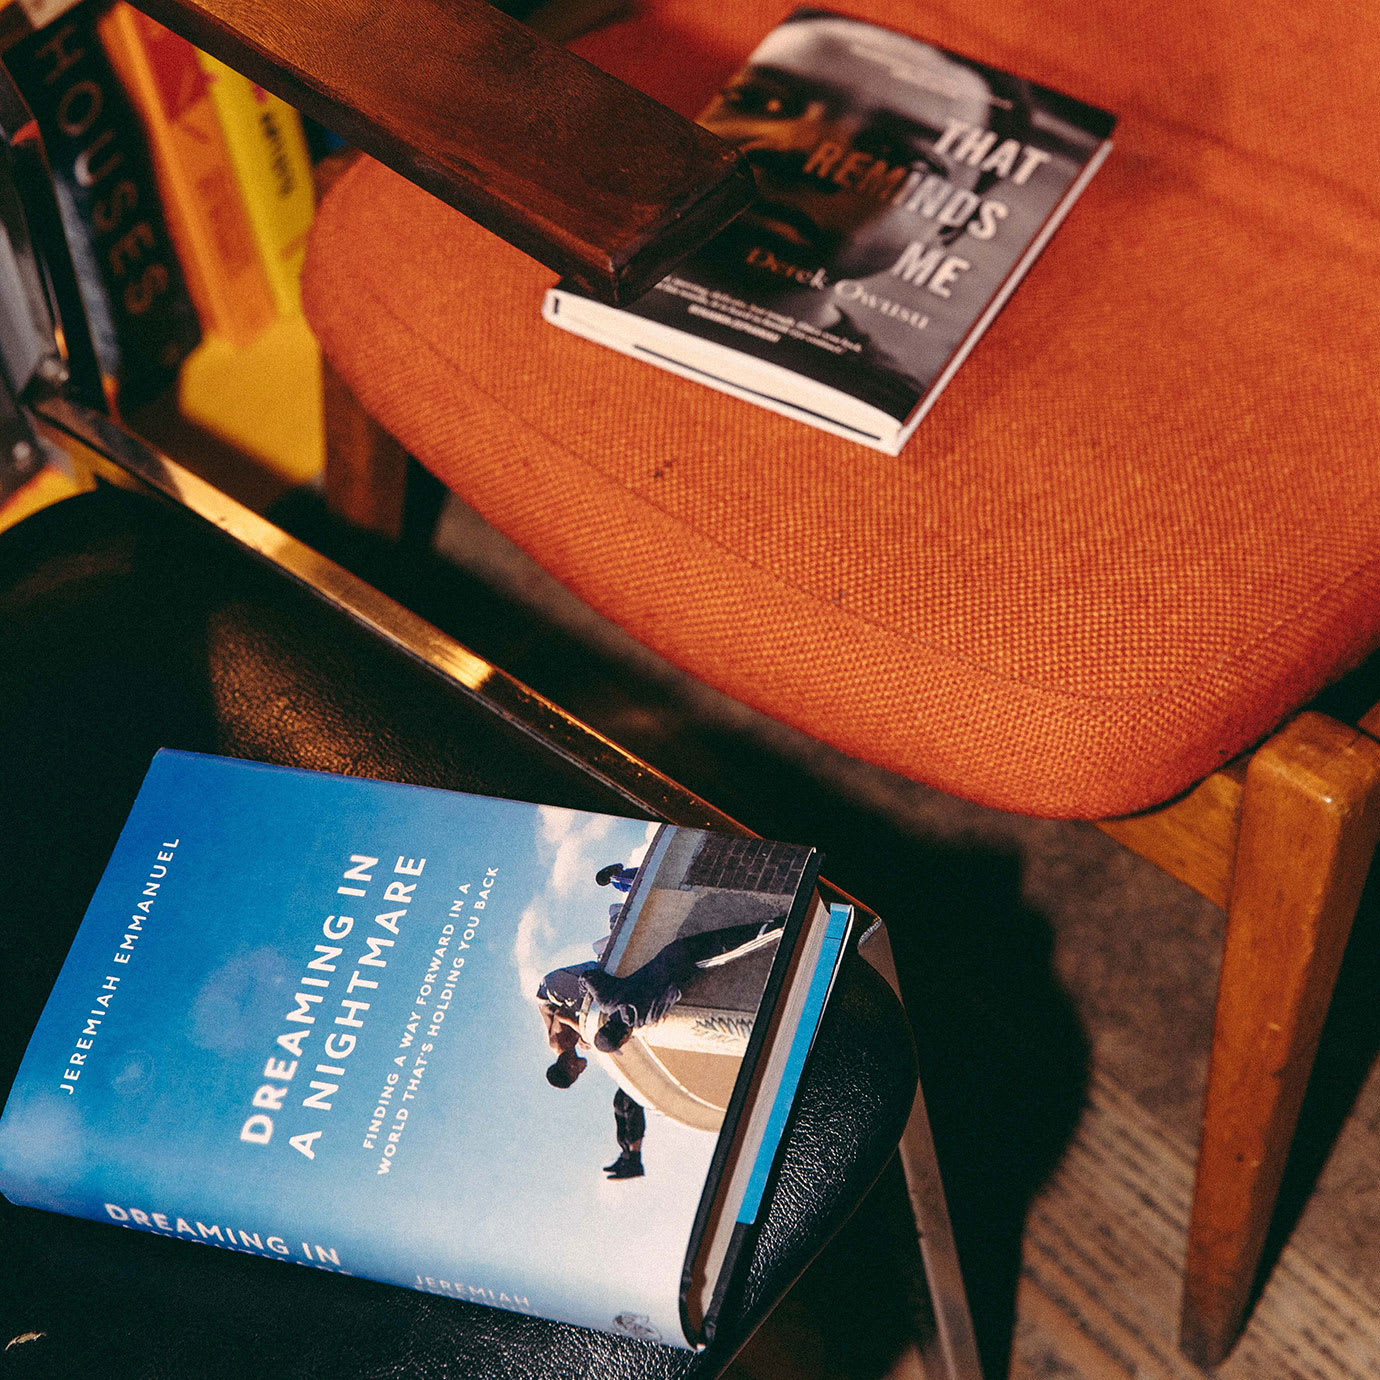 Two books on chairs.